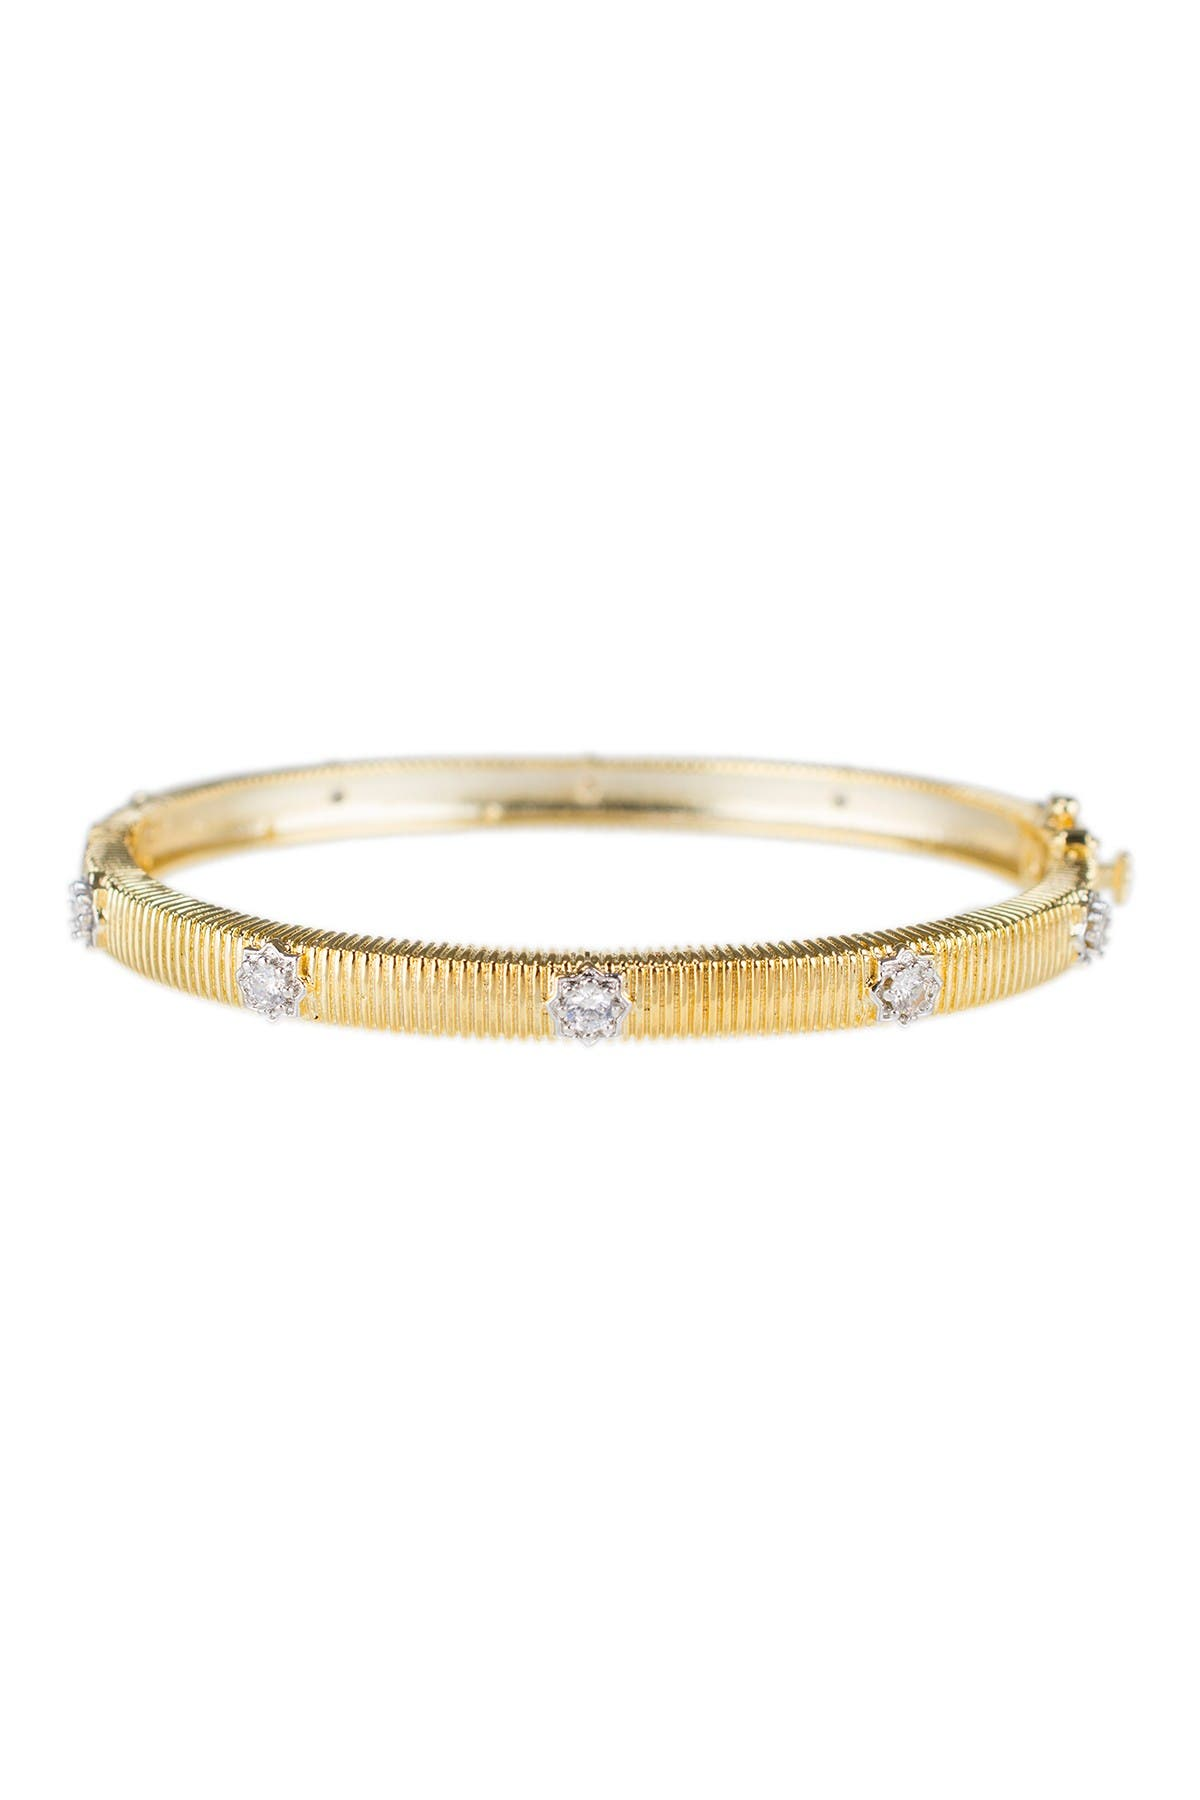 Image of CZ By Kenneth Jay Lane 18K Yellow Gold Plated CZ Starburst Bangle Bracelet